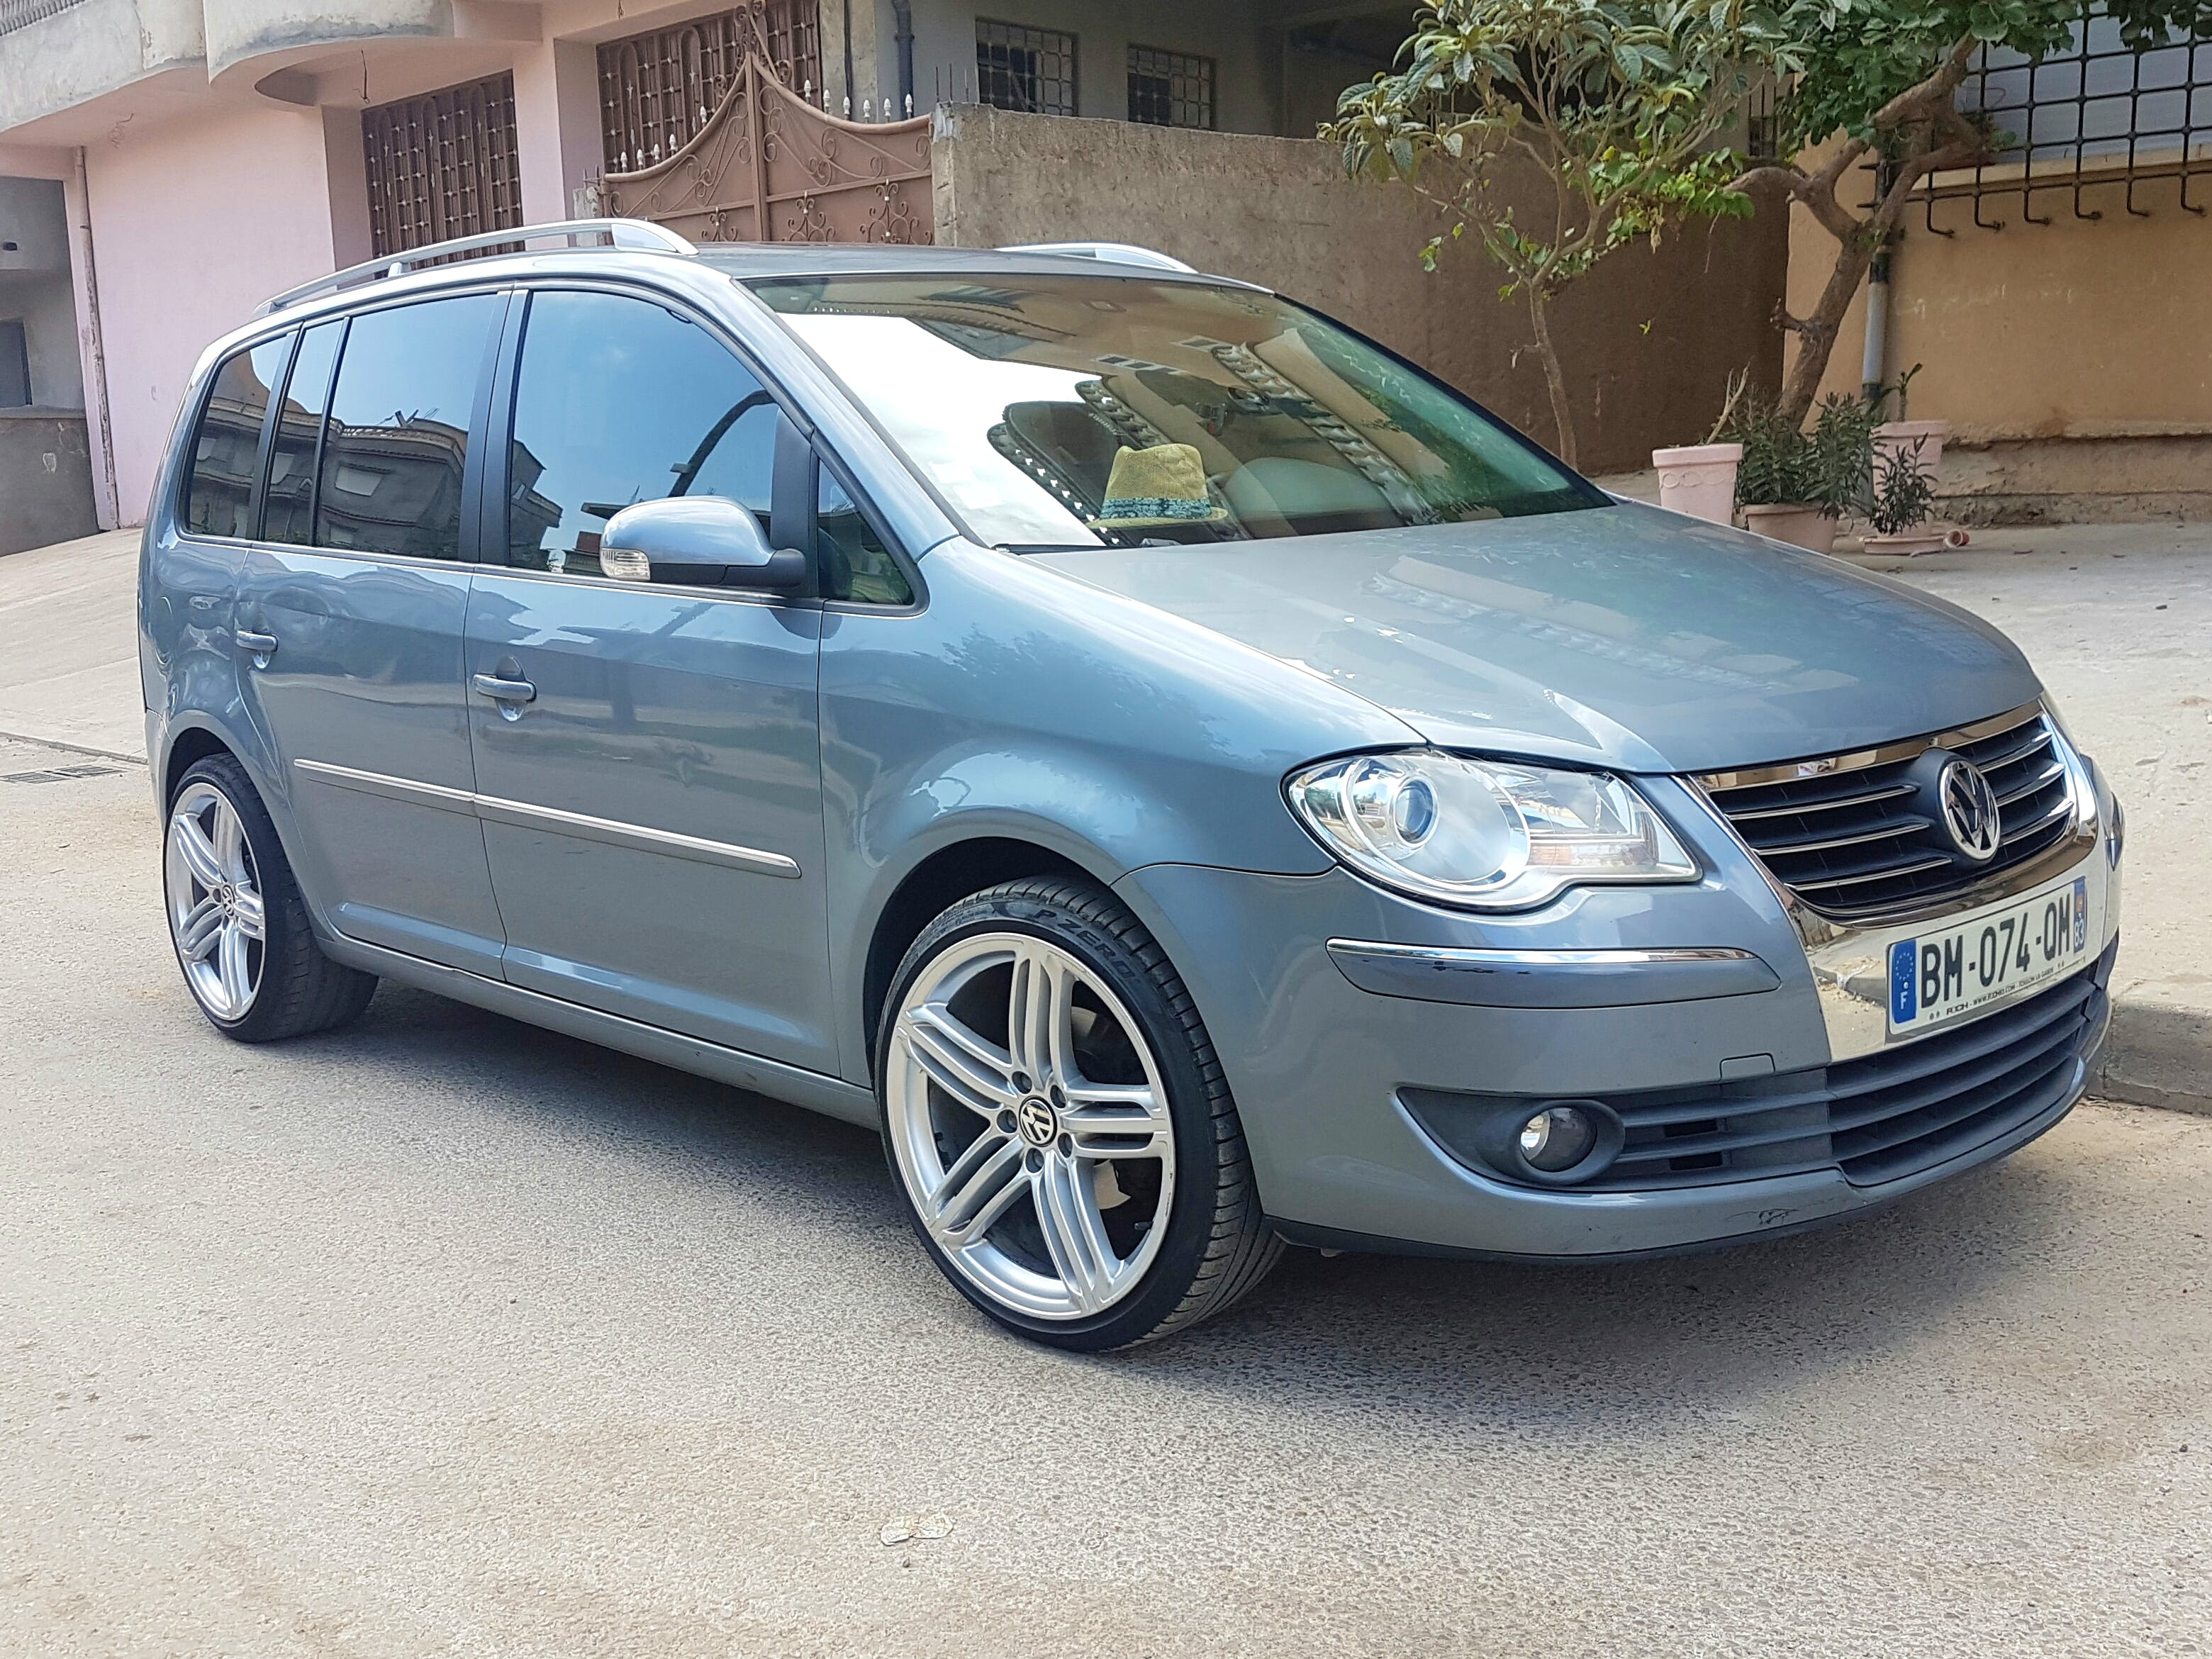 Volkswagen Touran  7places, 2007, Diesel, automatique, 7 places